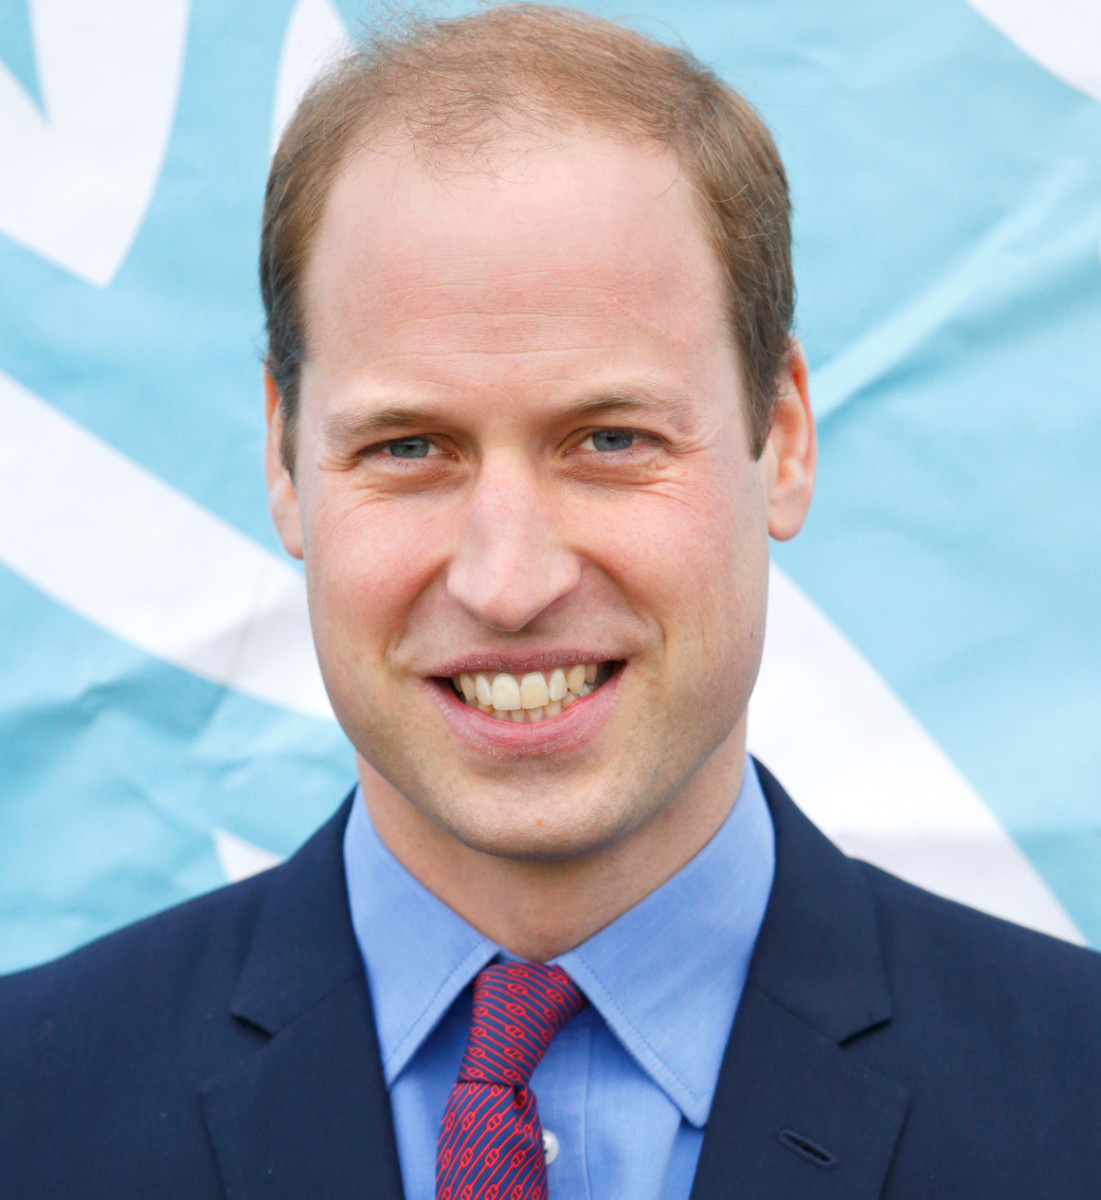 prince_william_photo_max_mumby_indigo_getty_images_500321416_croppedjpg